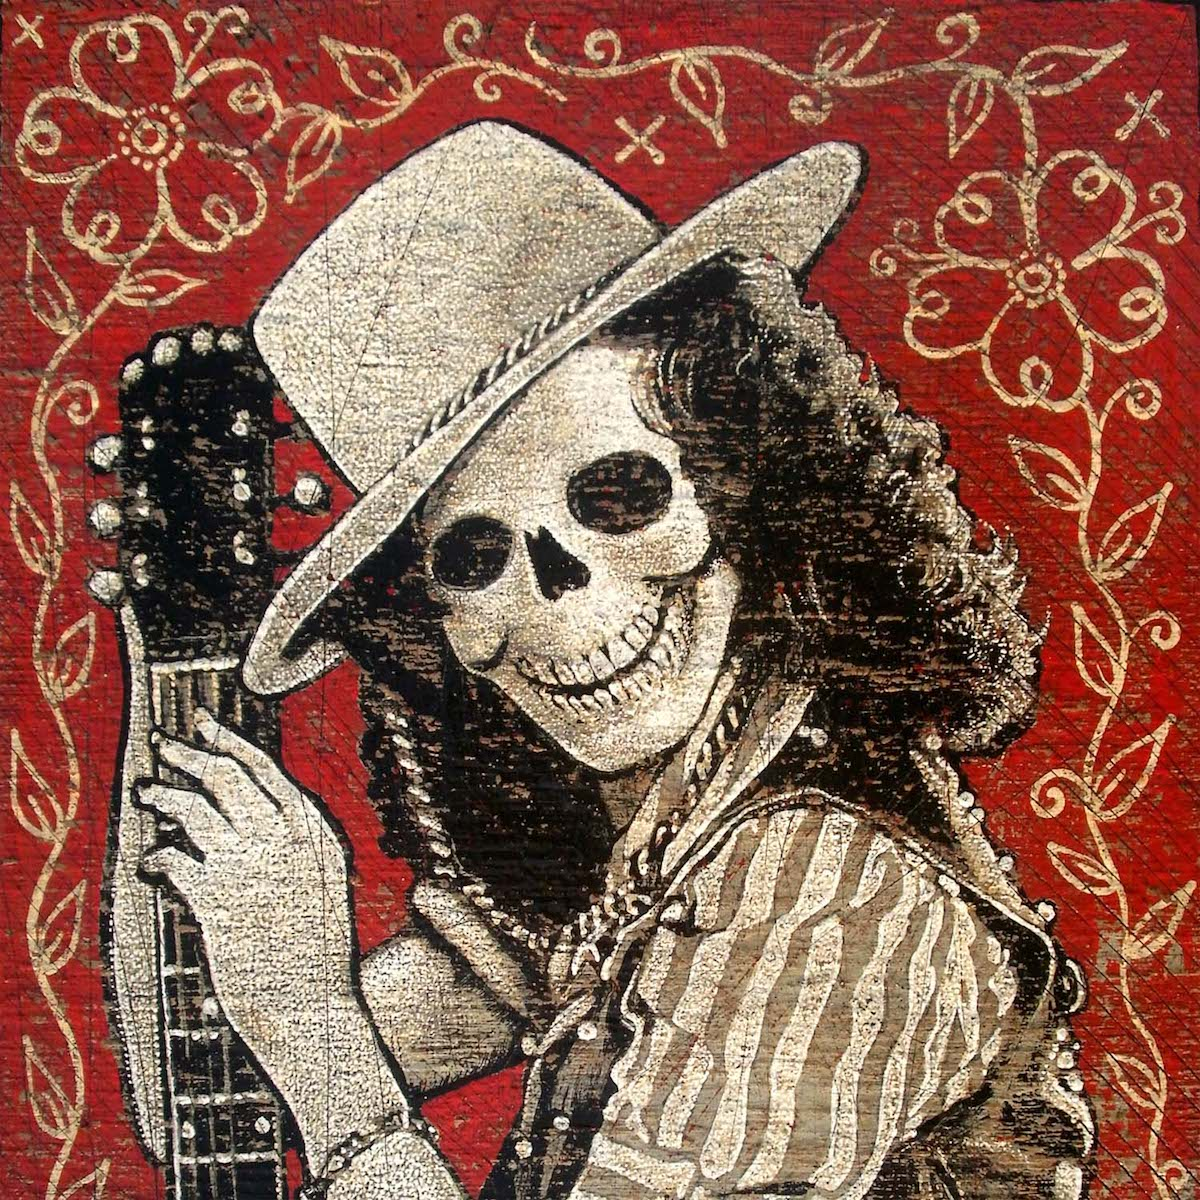 Red Skull Girl - Jon Langford - Yard Dog Art